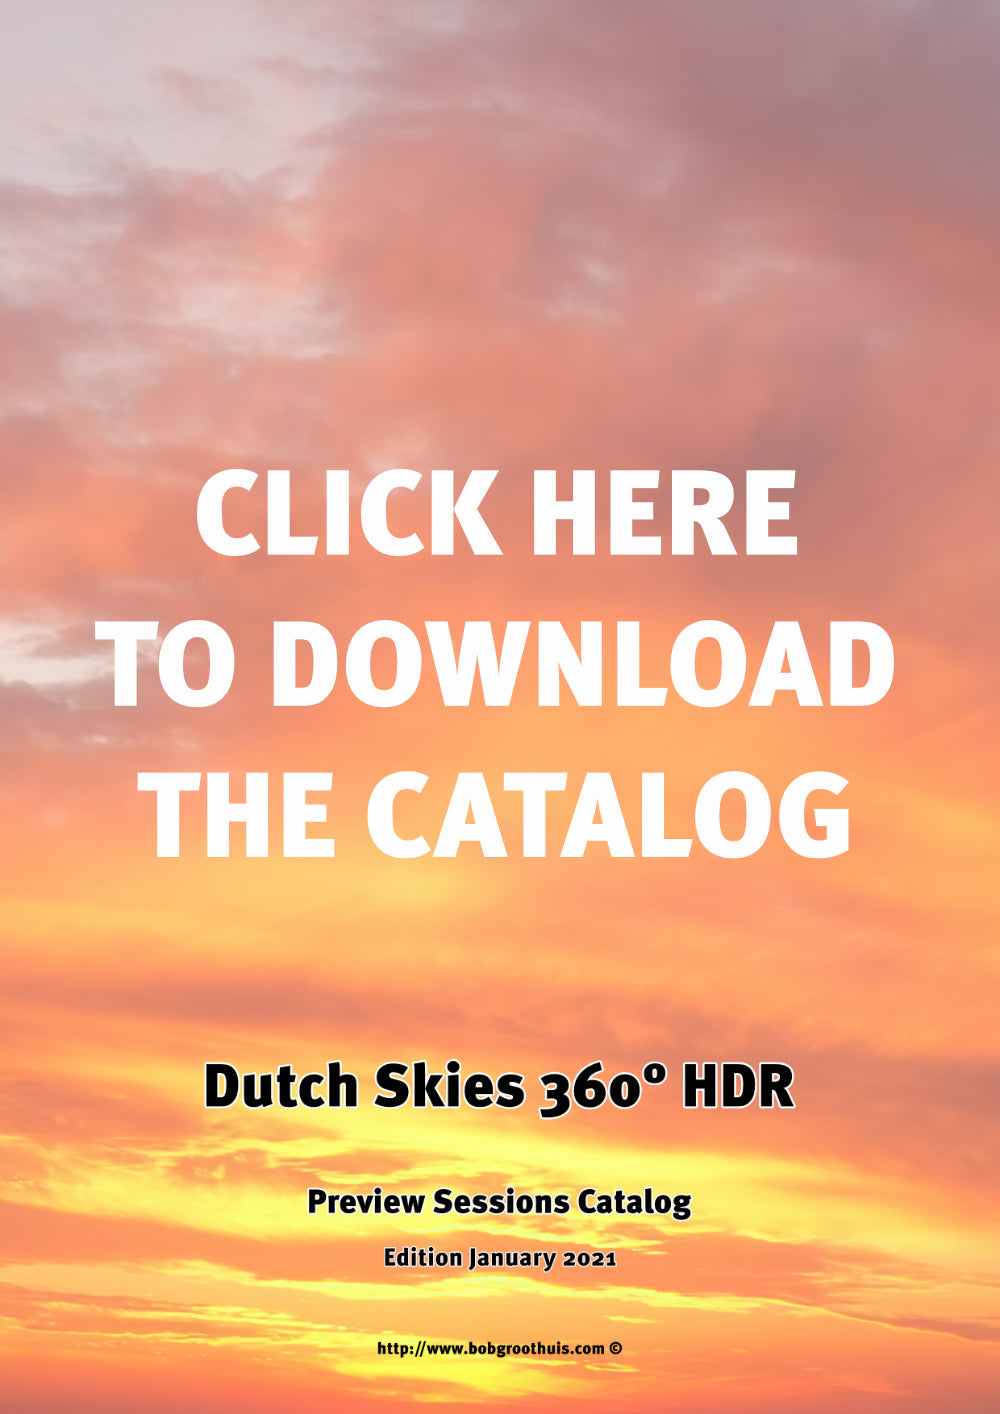 Click here to download the DS360XL Complete Preview Sessions Catalog PDF - Edition January 2021